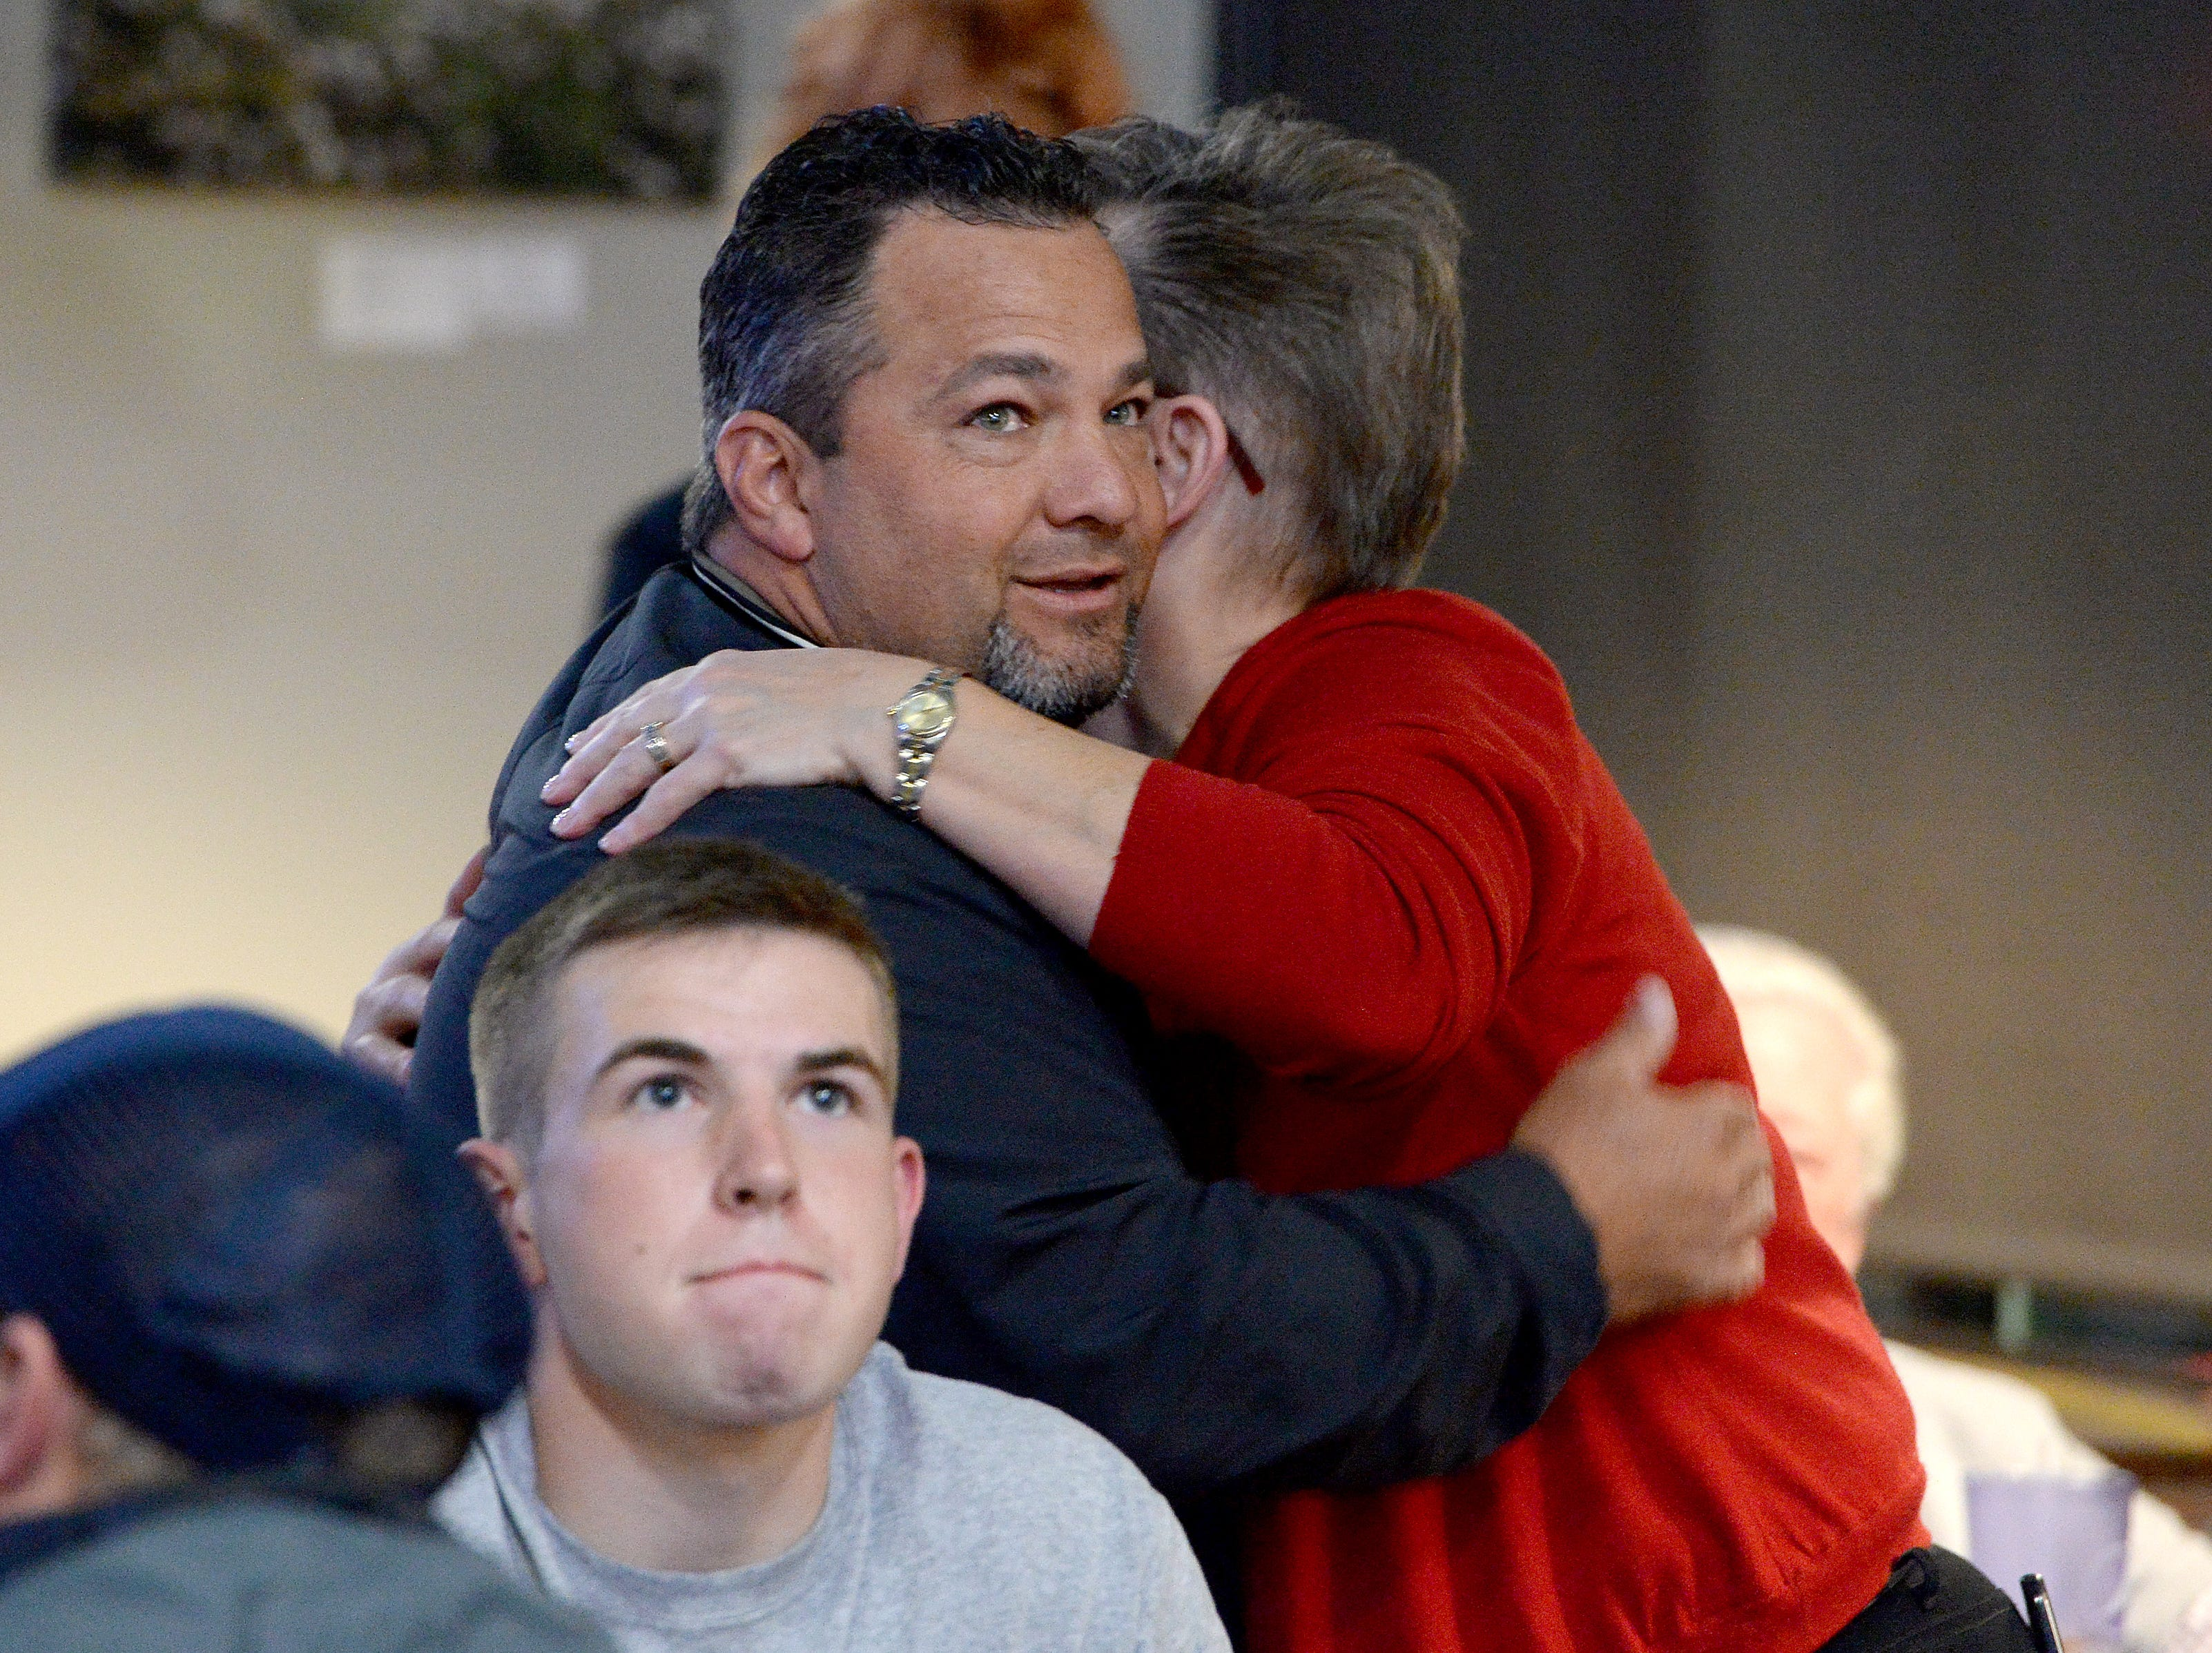 Republican candidate for Buncombe County Sheriff Shad Higgins hugs Glenda Weinert as they wait for results to roll in during an election results watch party for the Buncombe County Republicans at Twisted Laurel on Nov. 6, 2018.